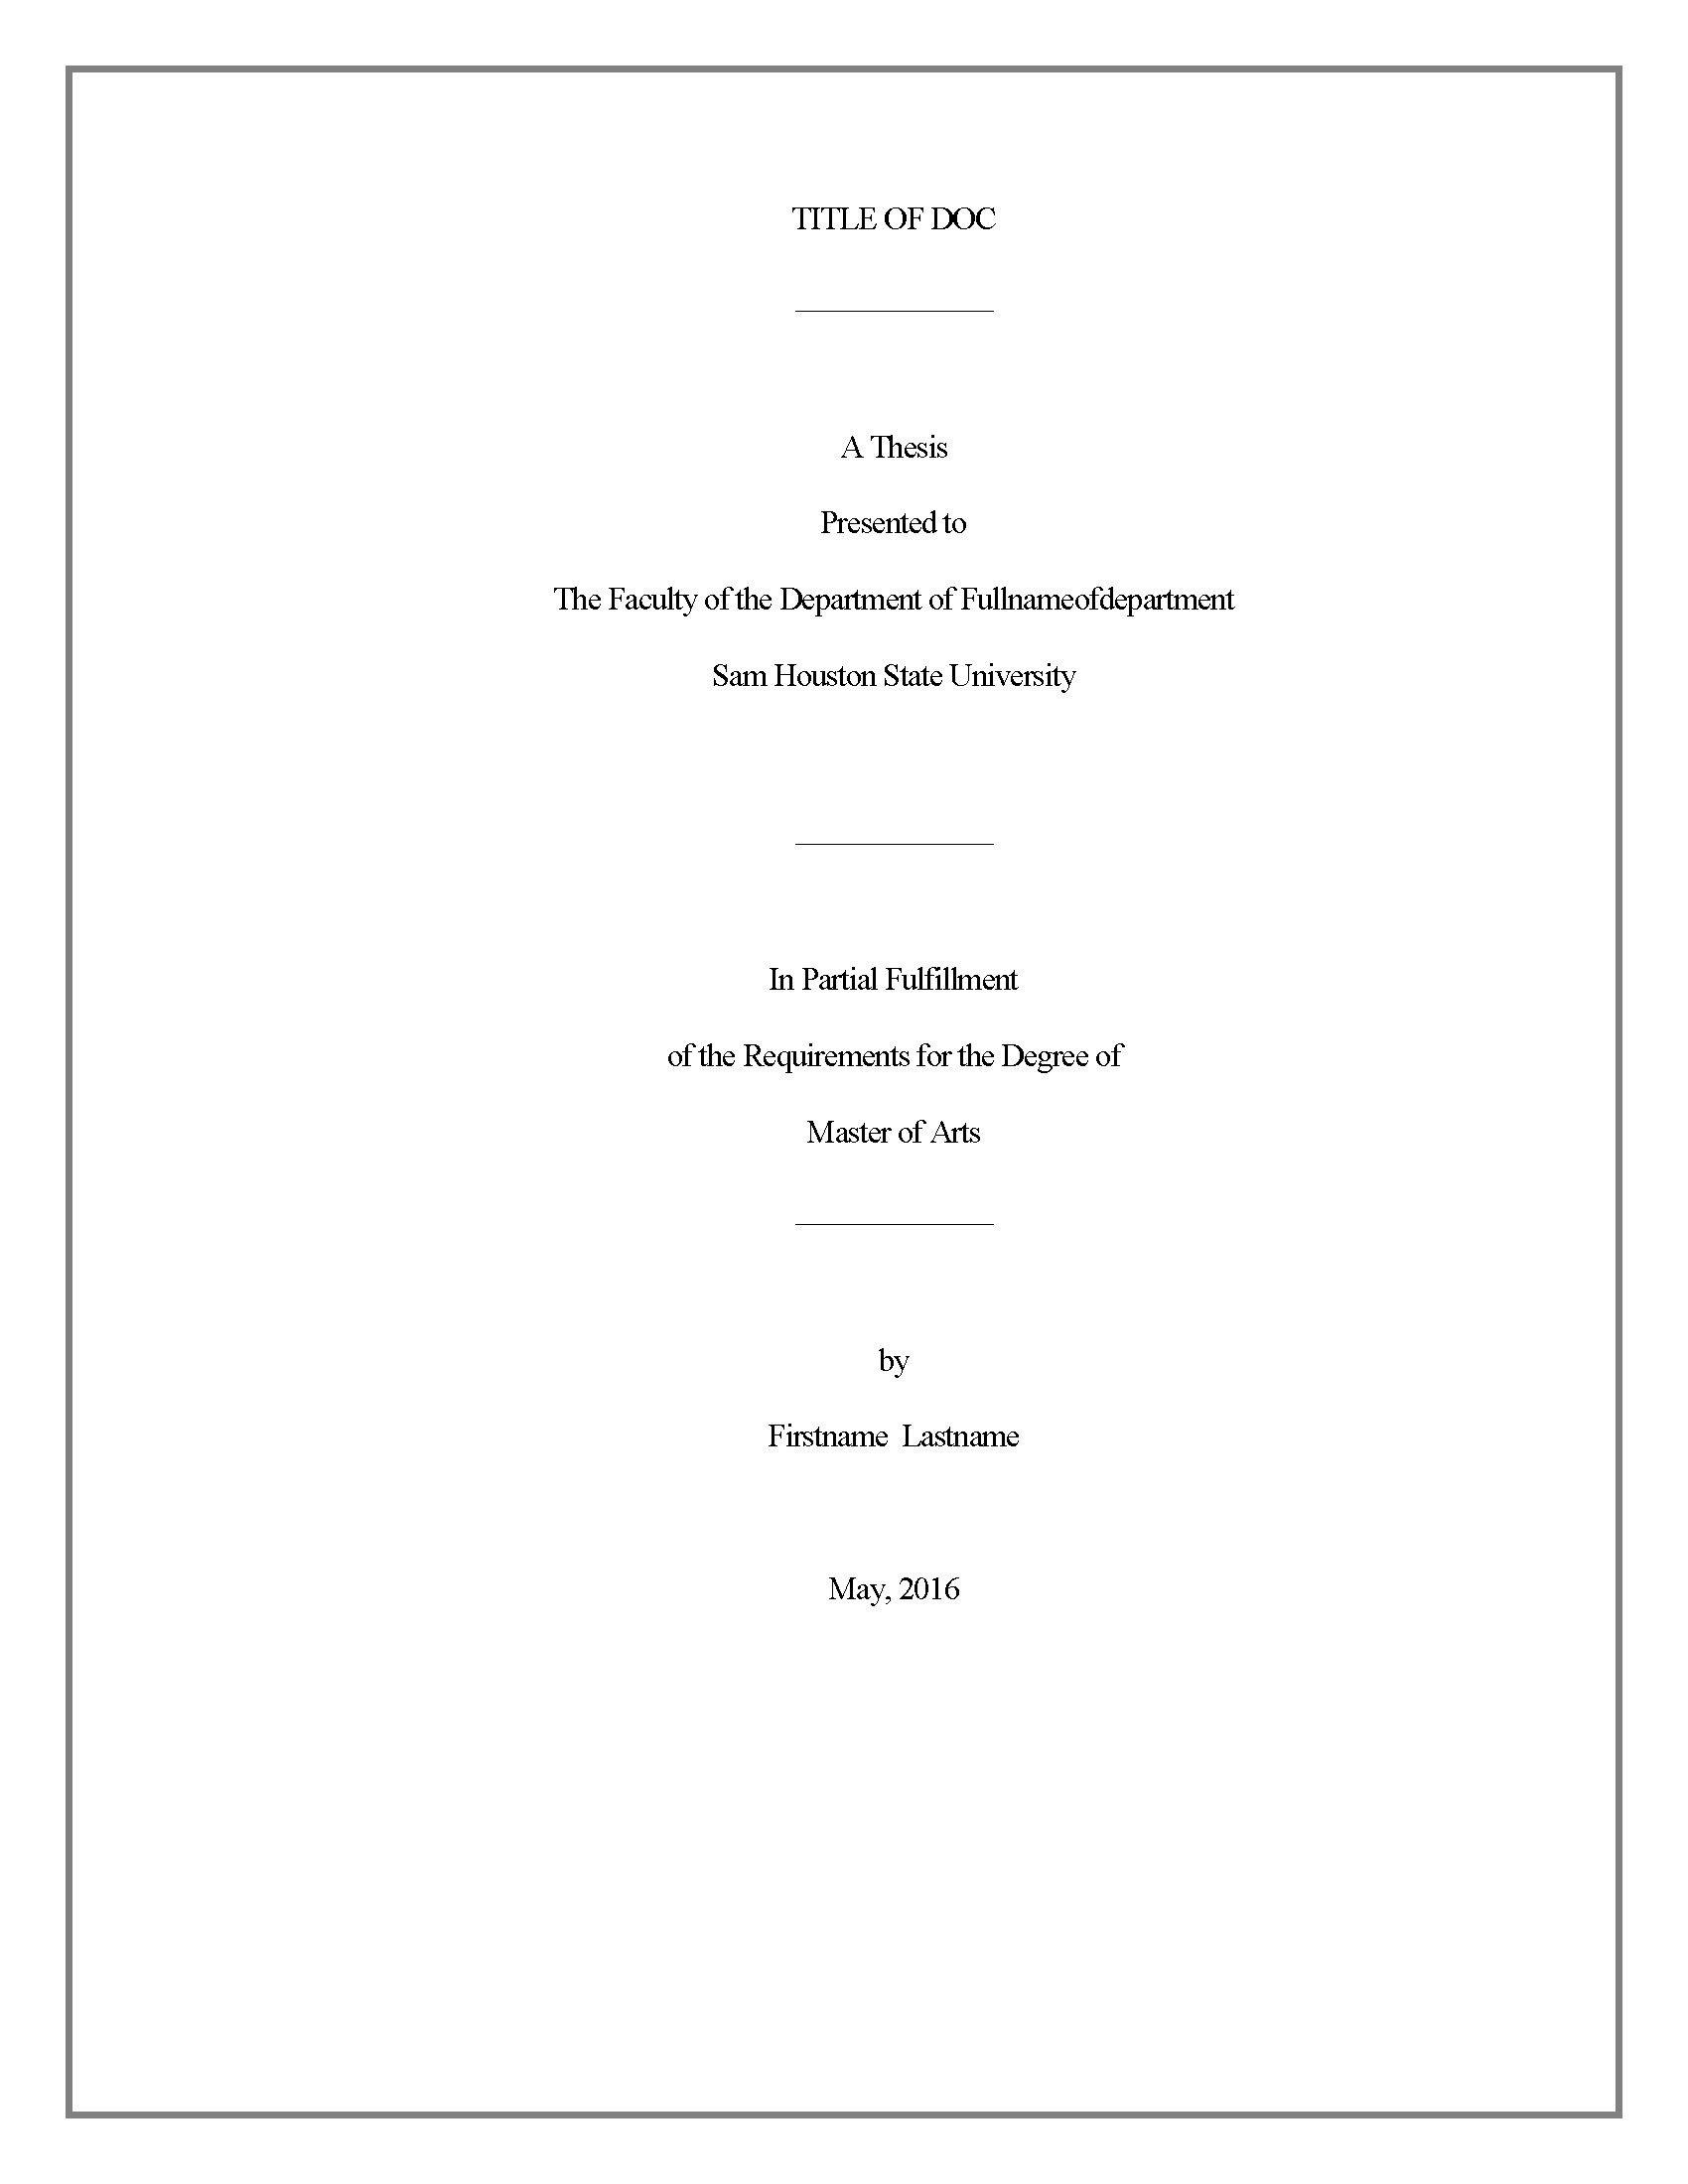 Title Page - Thesis And Dissertation - Research Guides At Sam Houston State  University